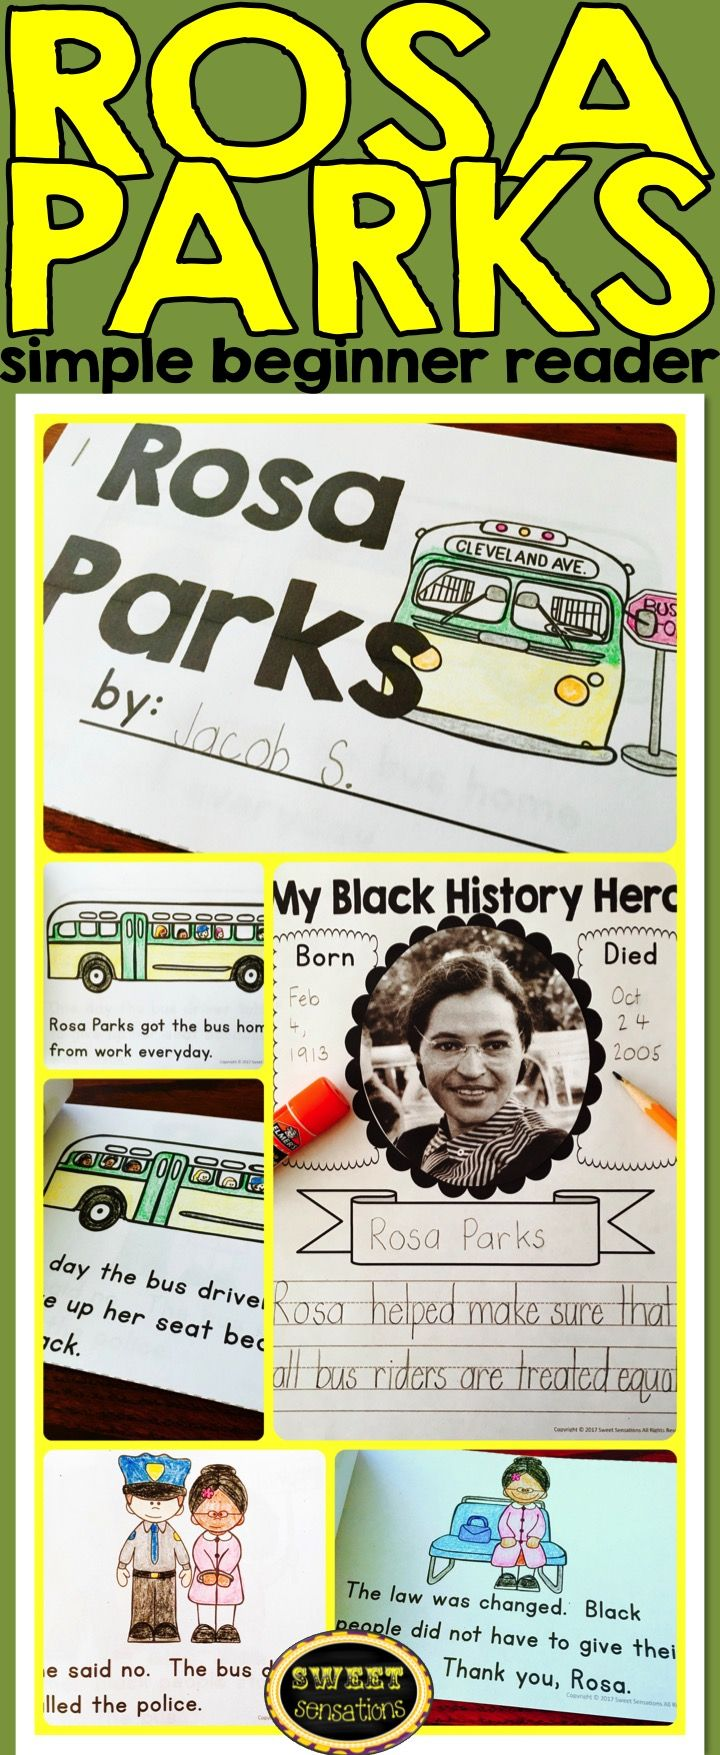 best ideas about rosa parks story rosa parks a simple retelling of the rosa parks story makes this little book perfect for beginner readers